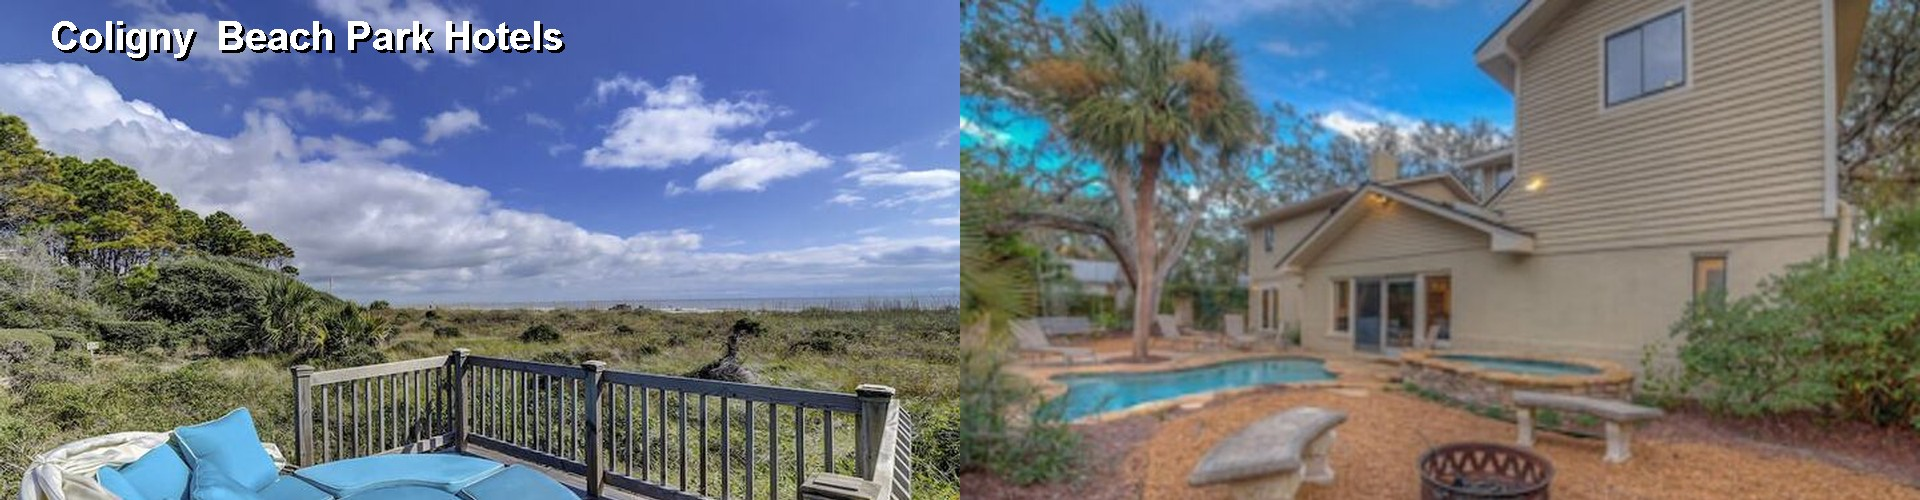 5 Best Hotels near Coligny Beach Park